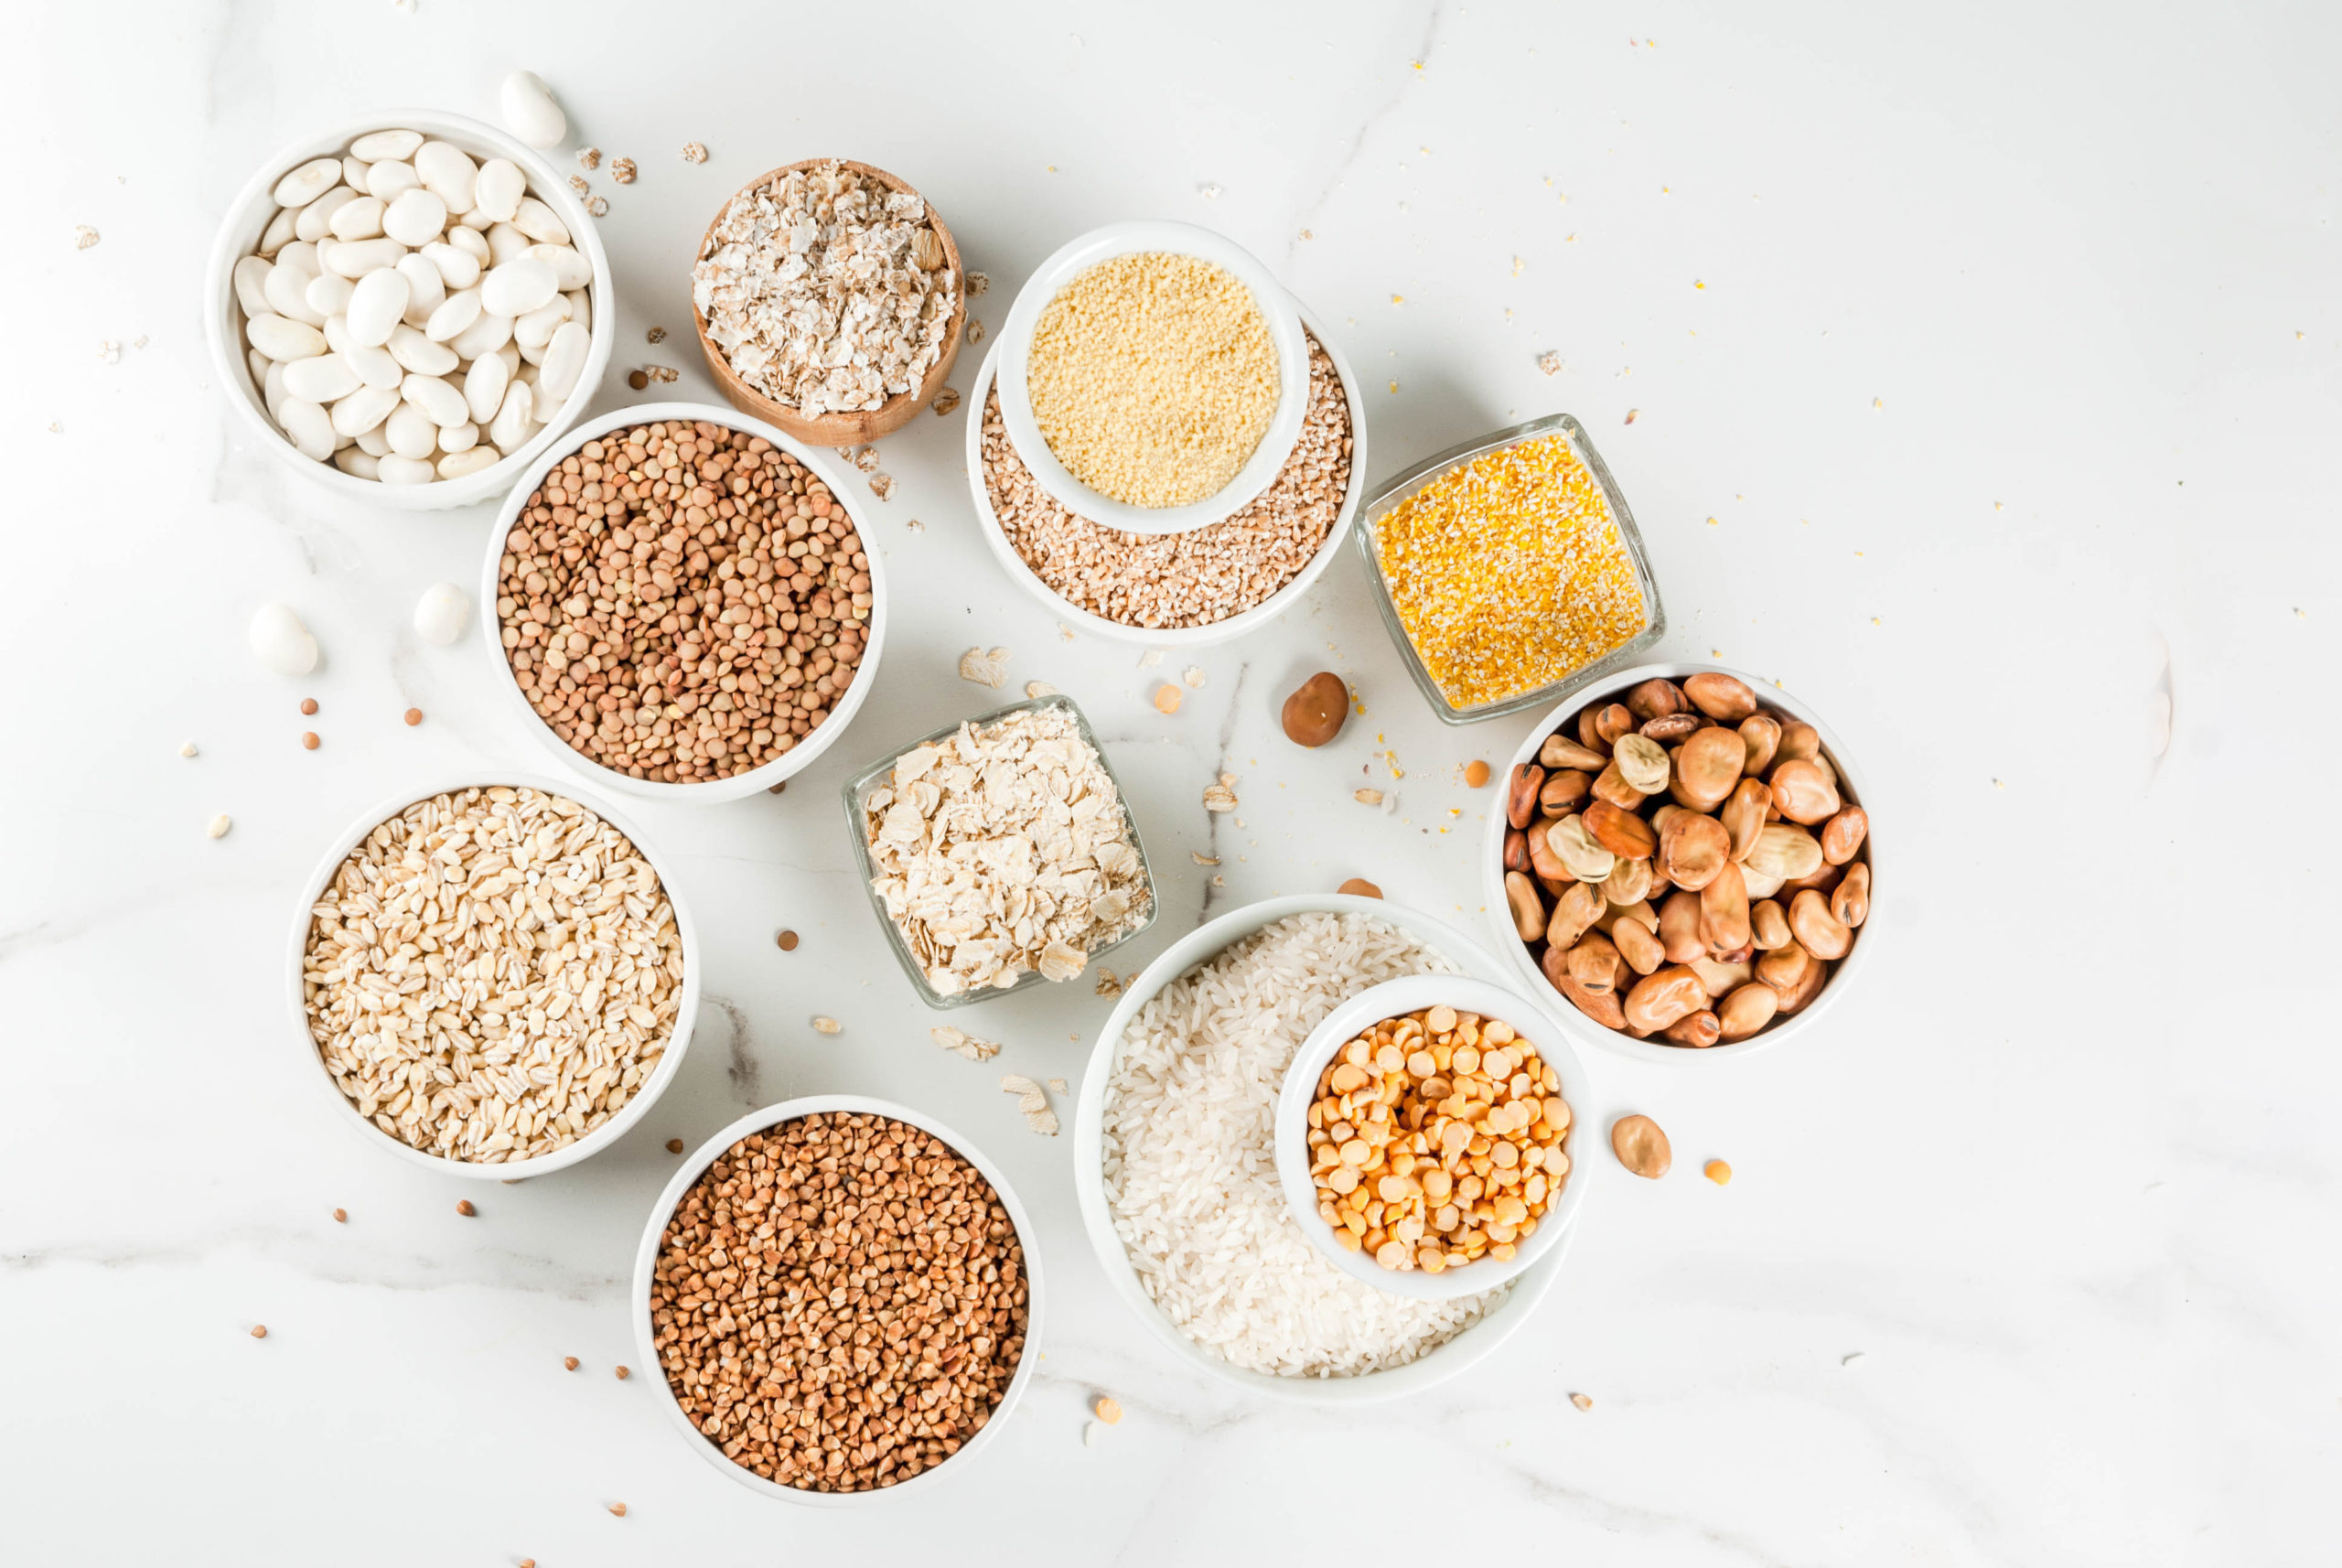 Sign up to our newsletter for the latest on grain and legume nutrition